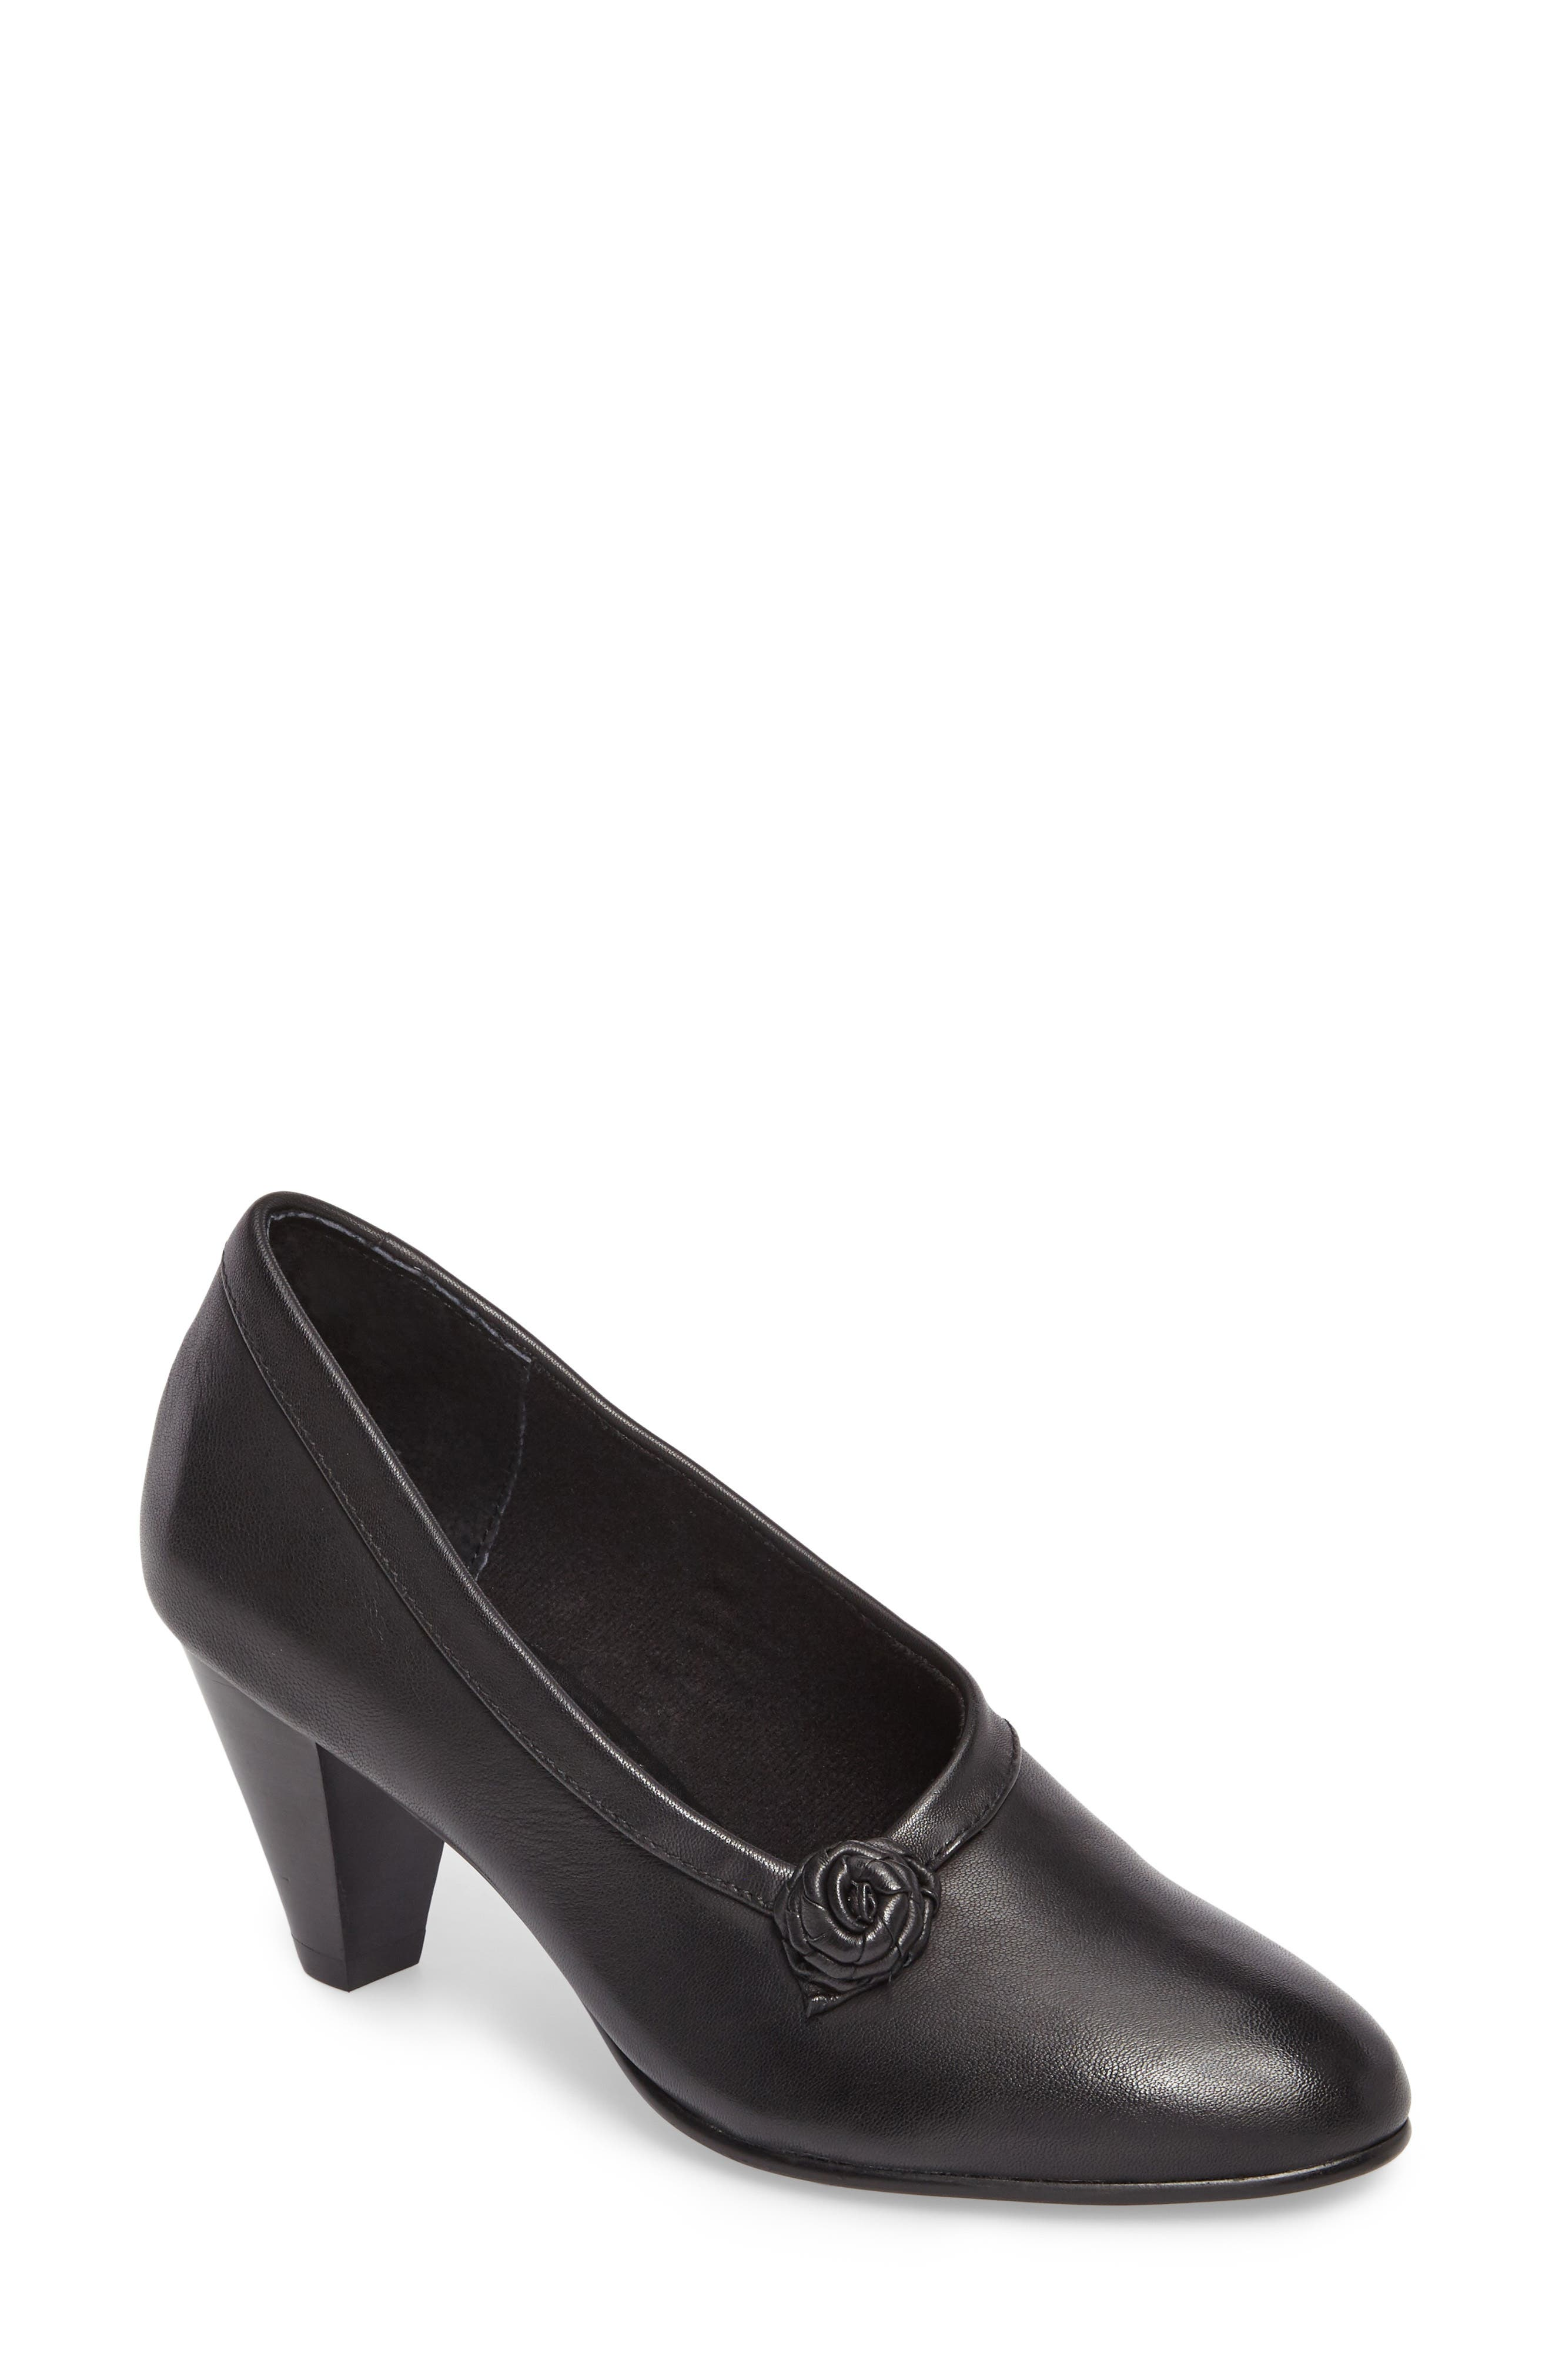 Kelly Pump,                         Main,                         color, Black Leather